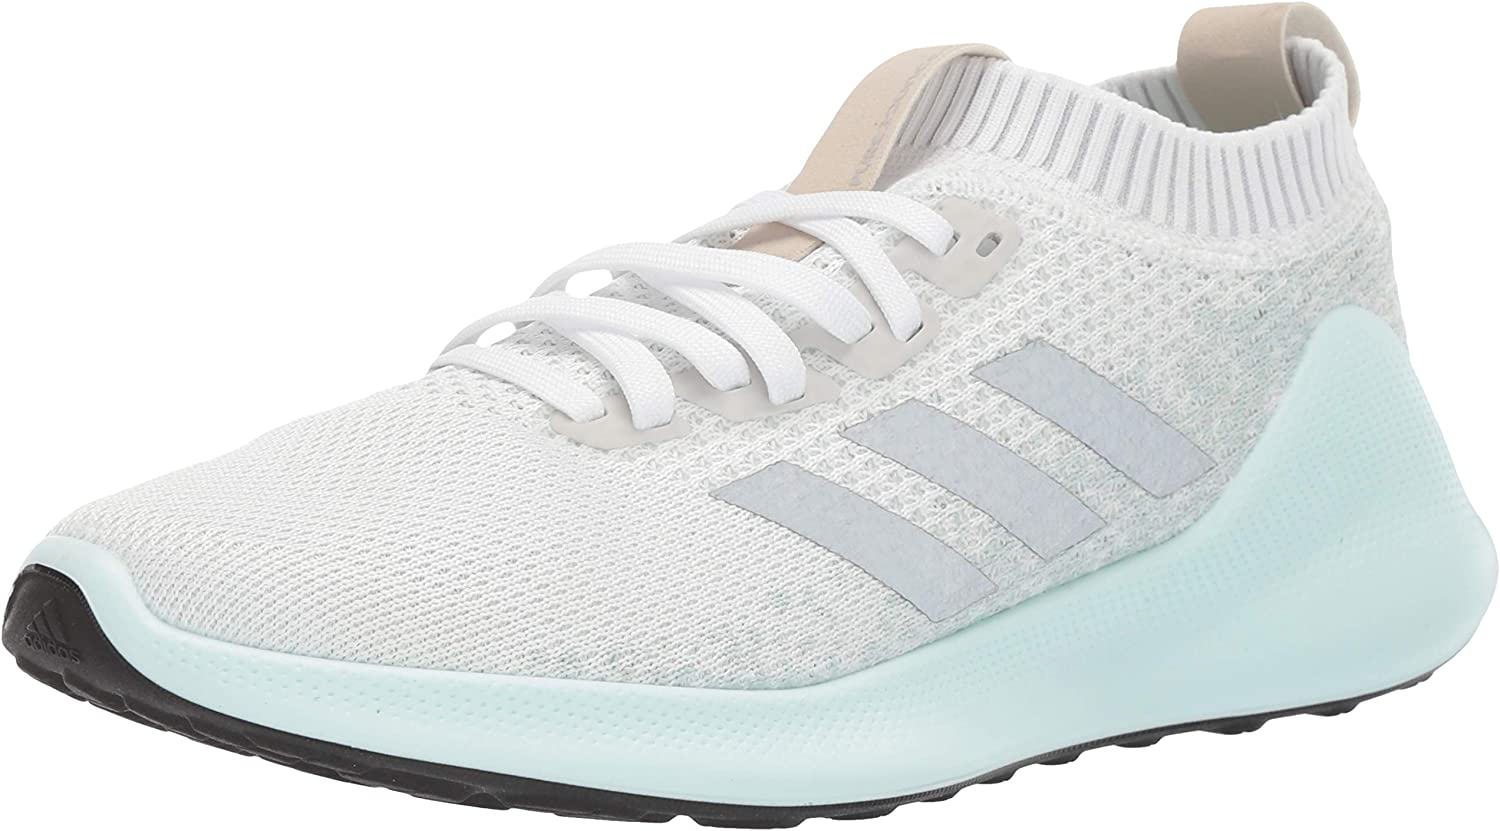 adidas Womens Purebounce Running Casual Shoes,